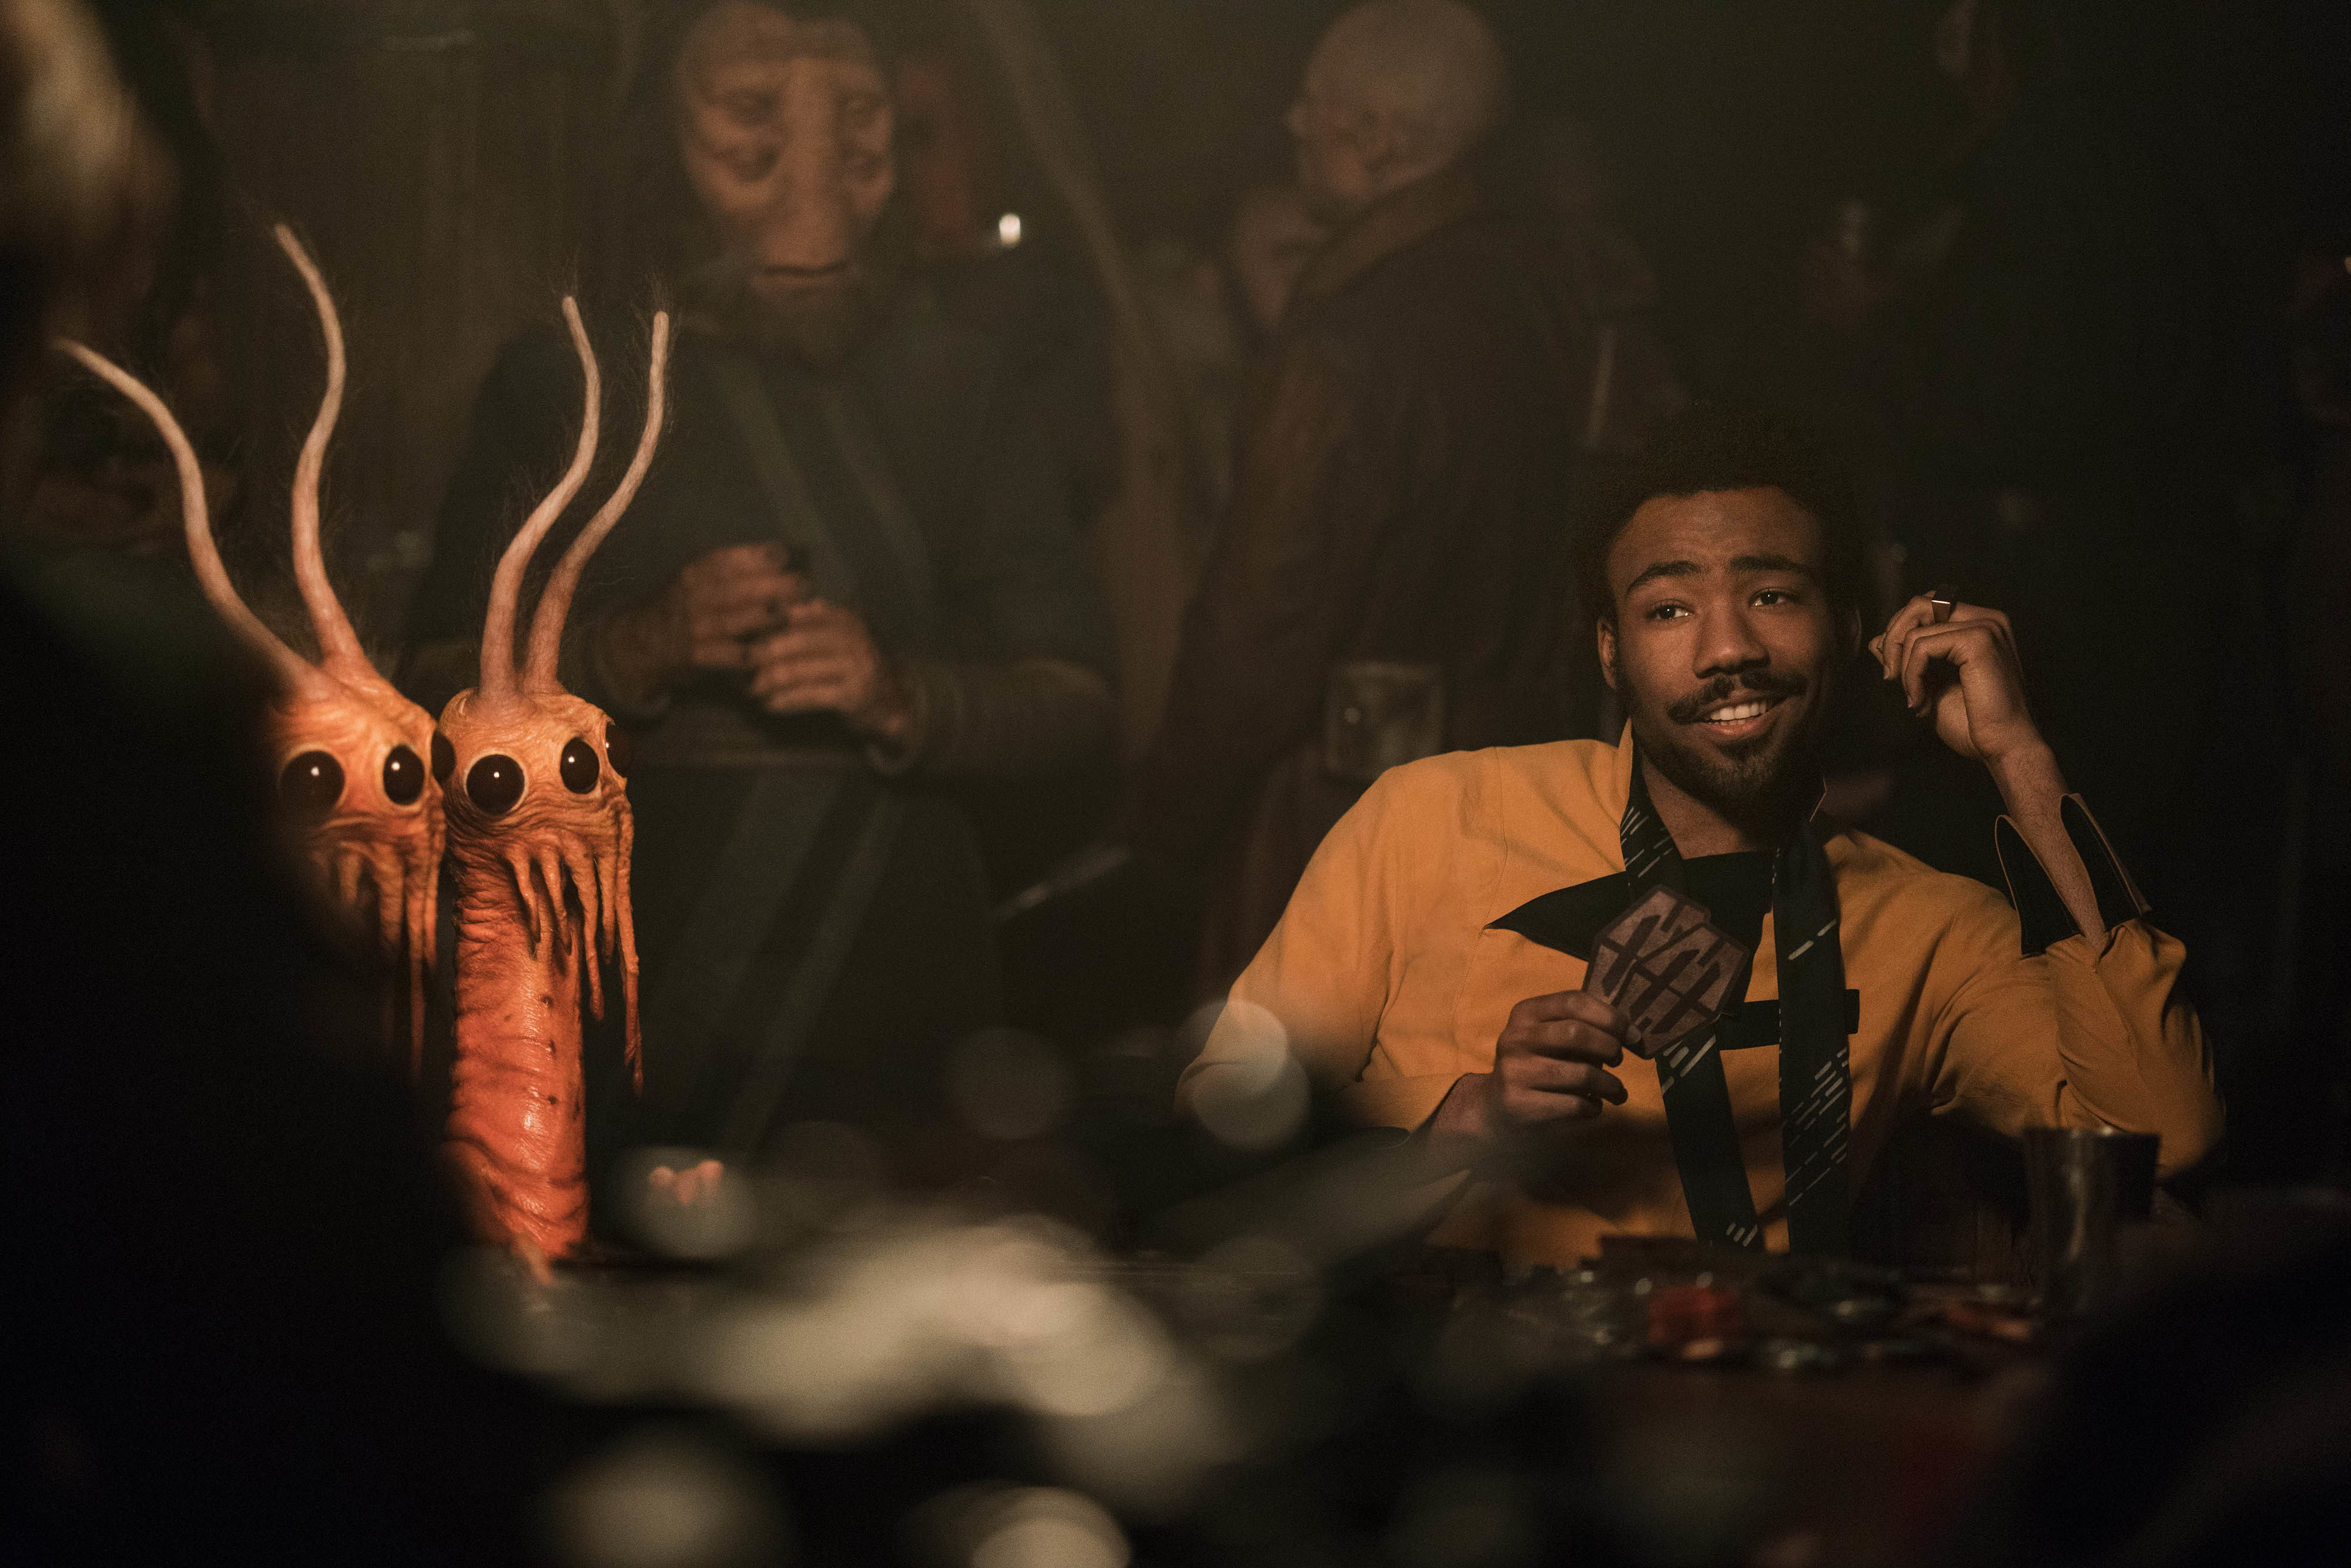 'Star Wars' writer confirms Donald Glover's Lando Calrissian is pansexual in 'Solo'